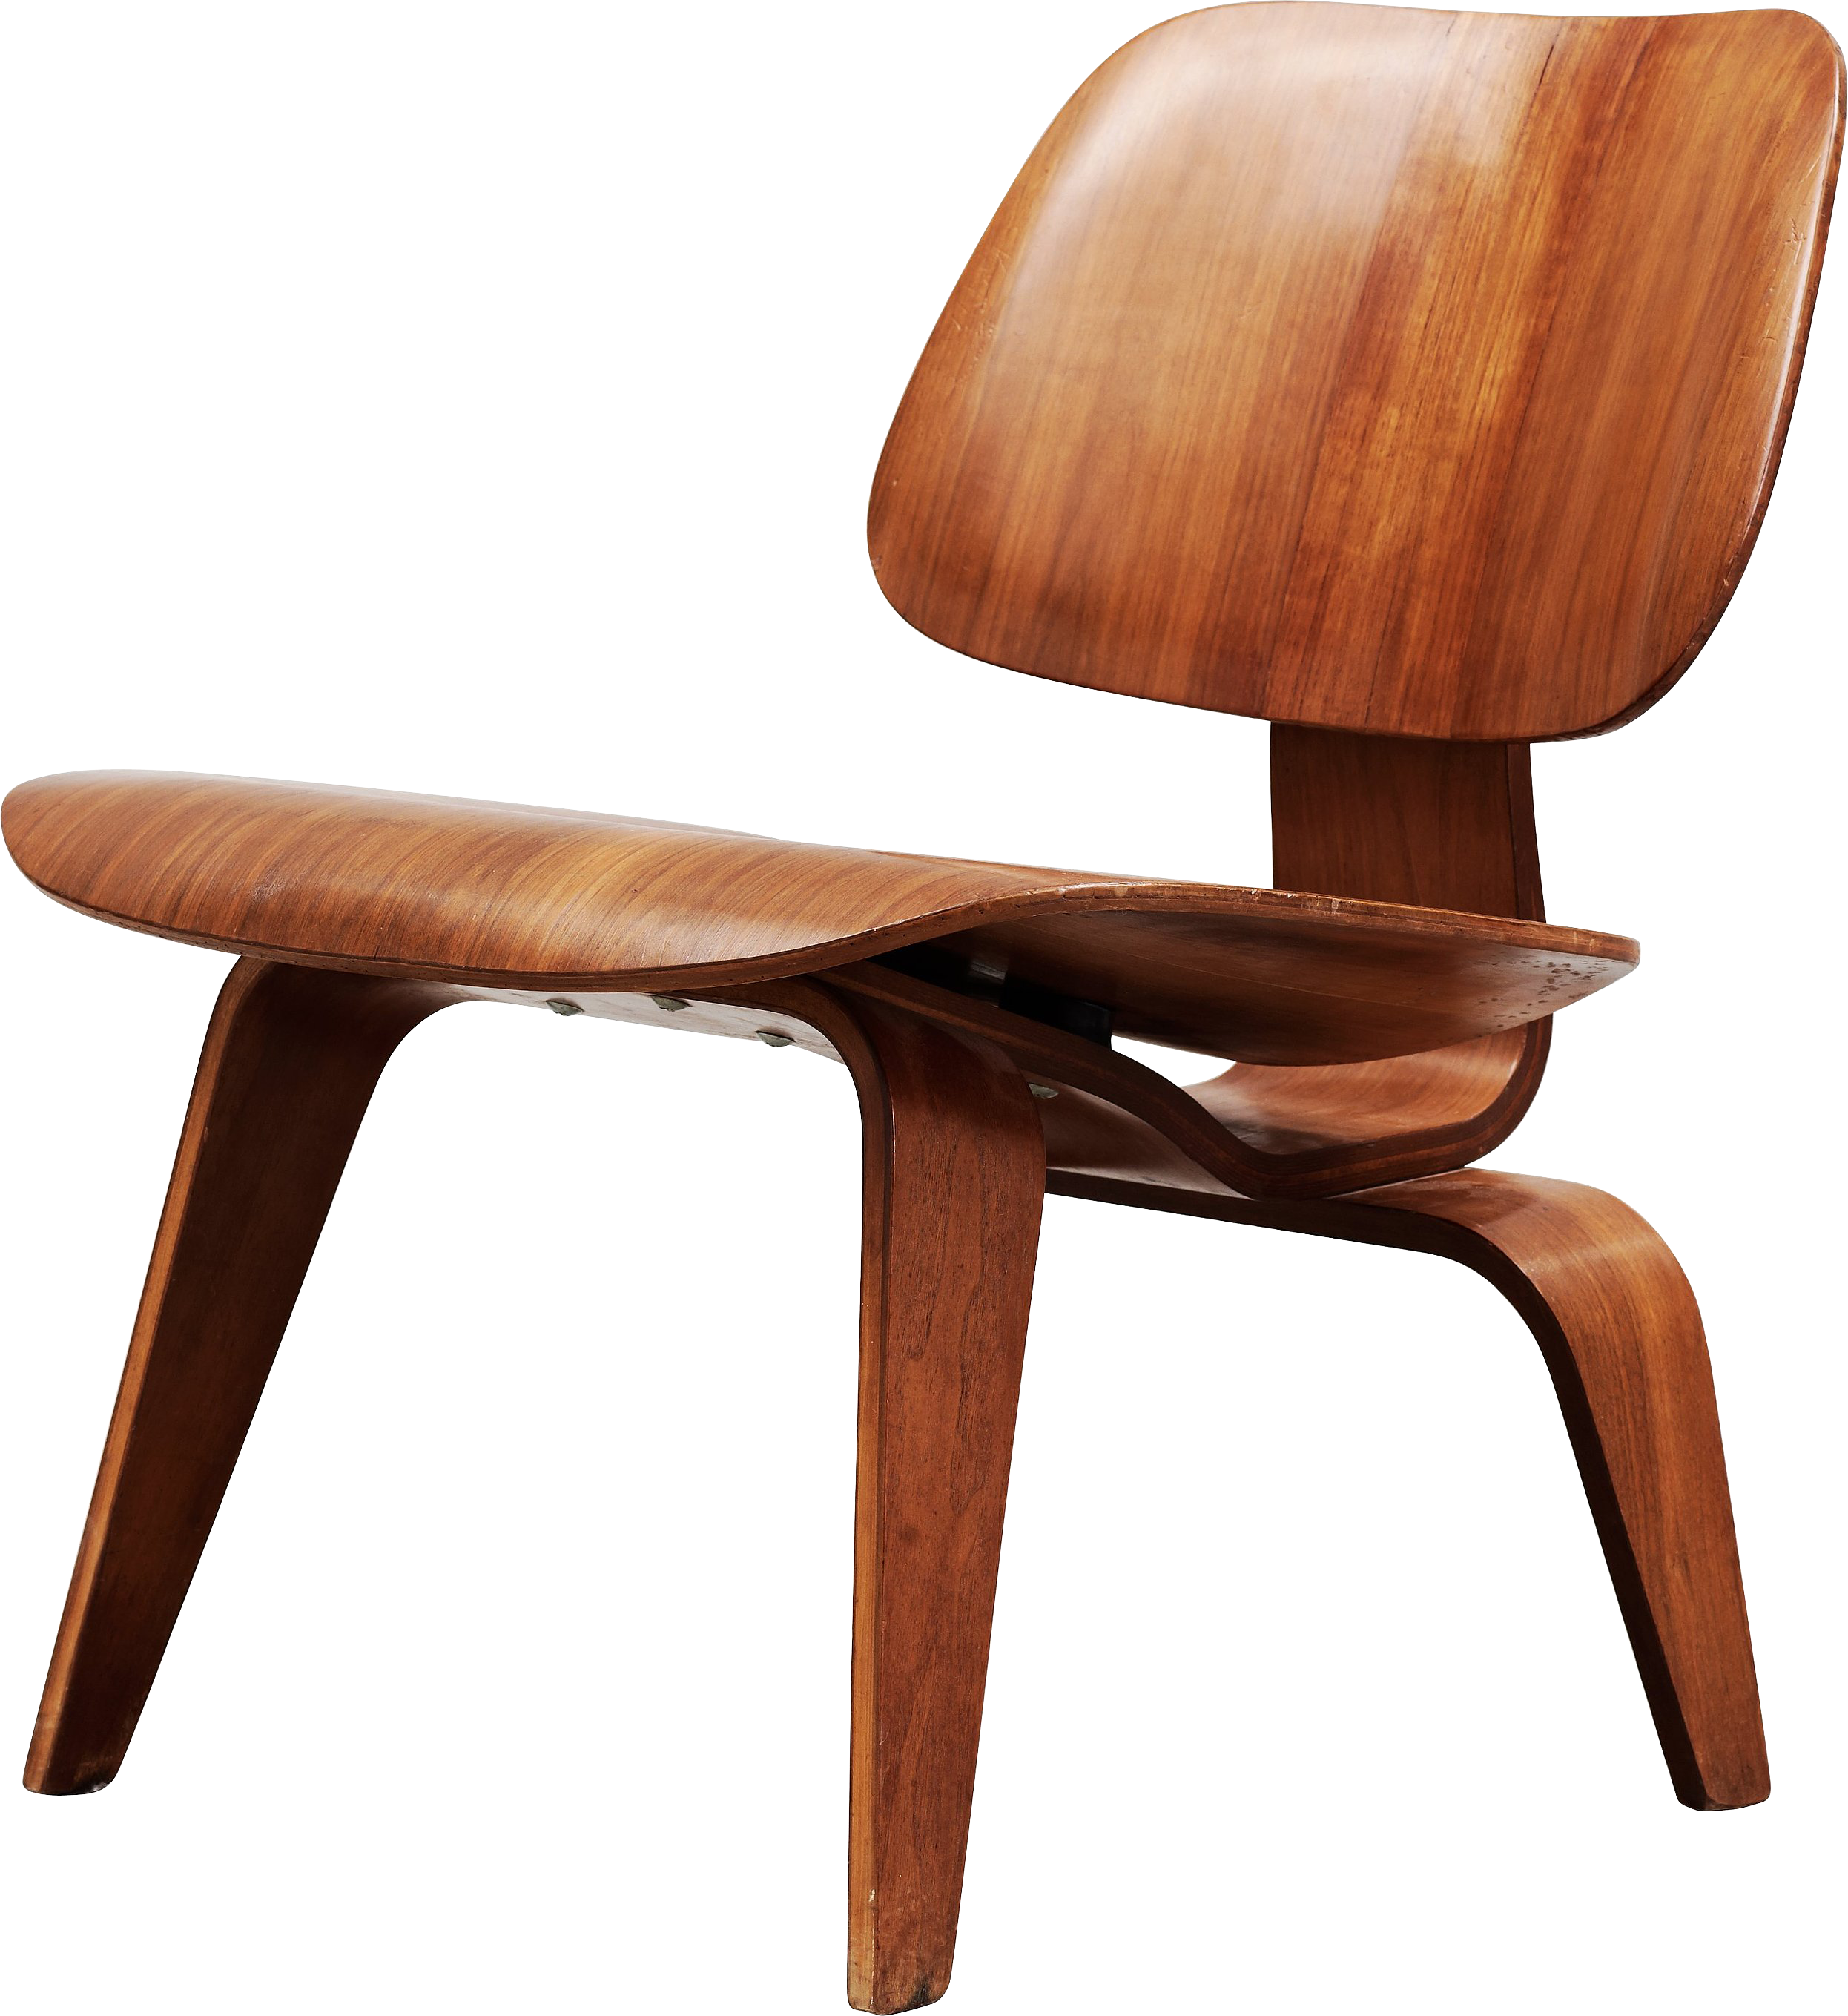 Png web icons download. Clipart chair wooden chair